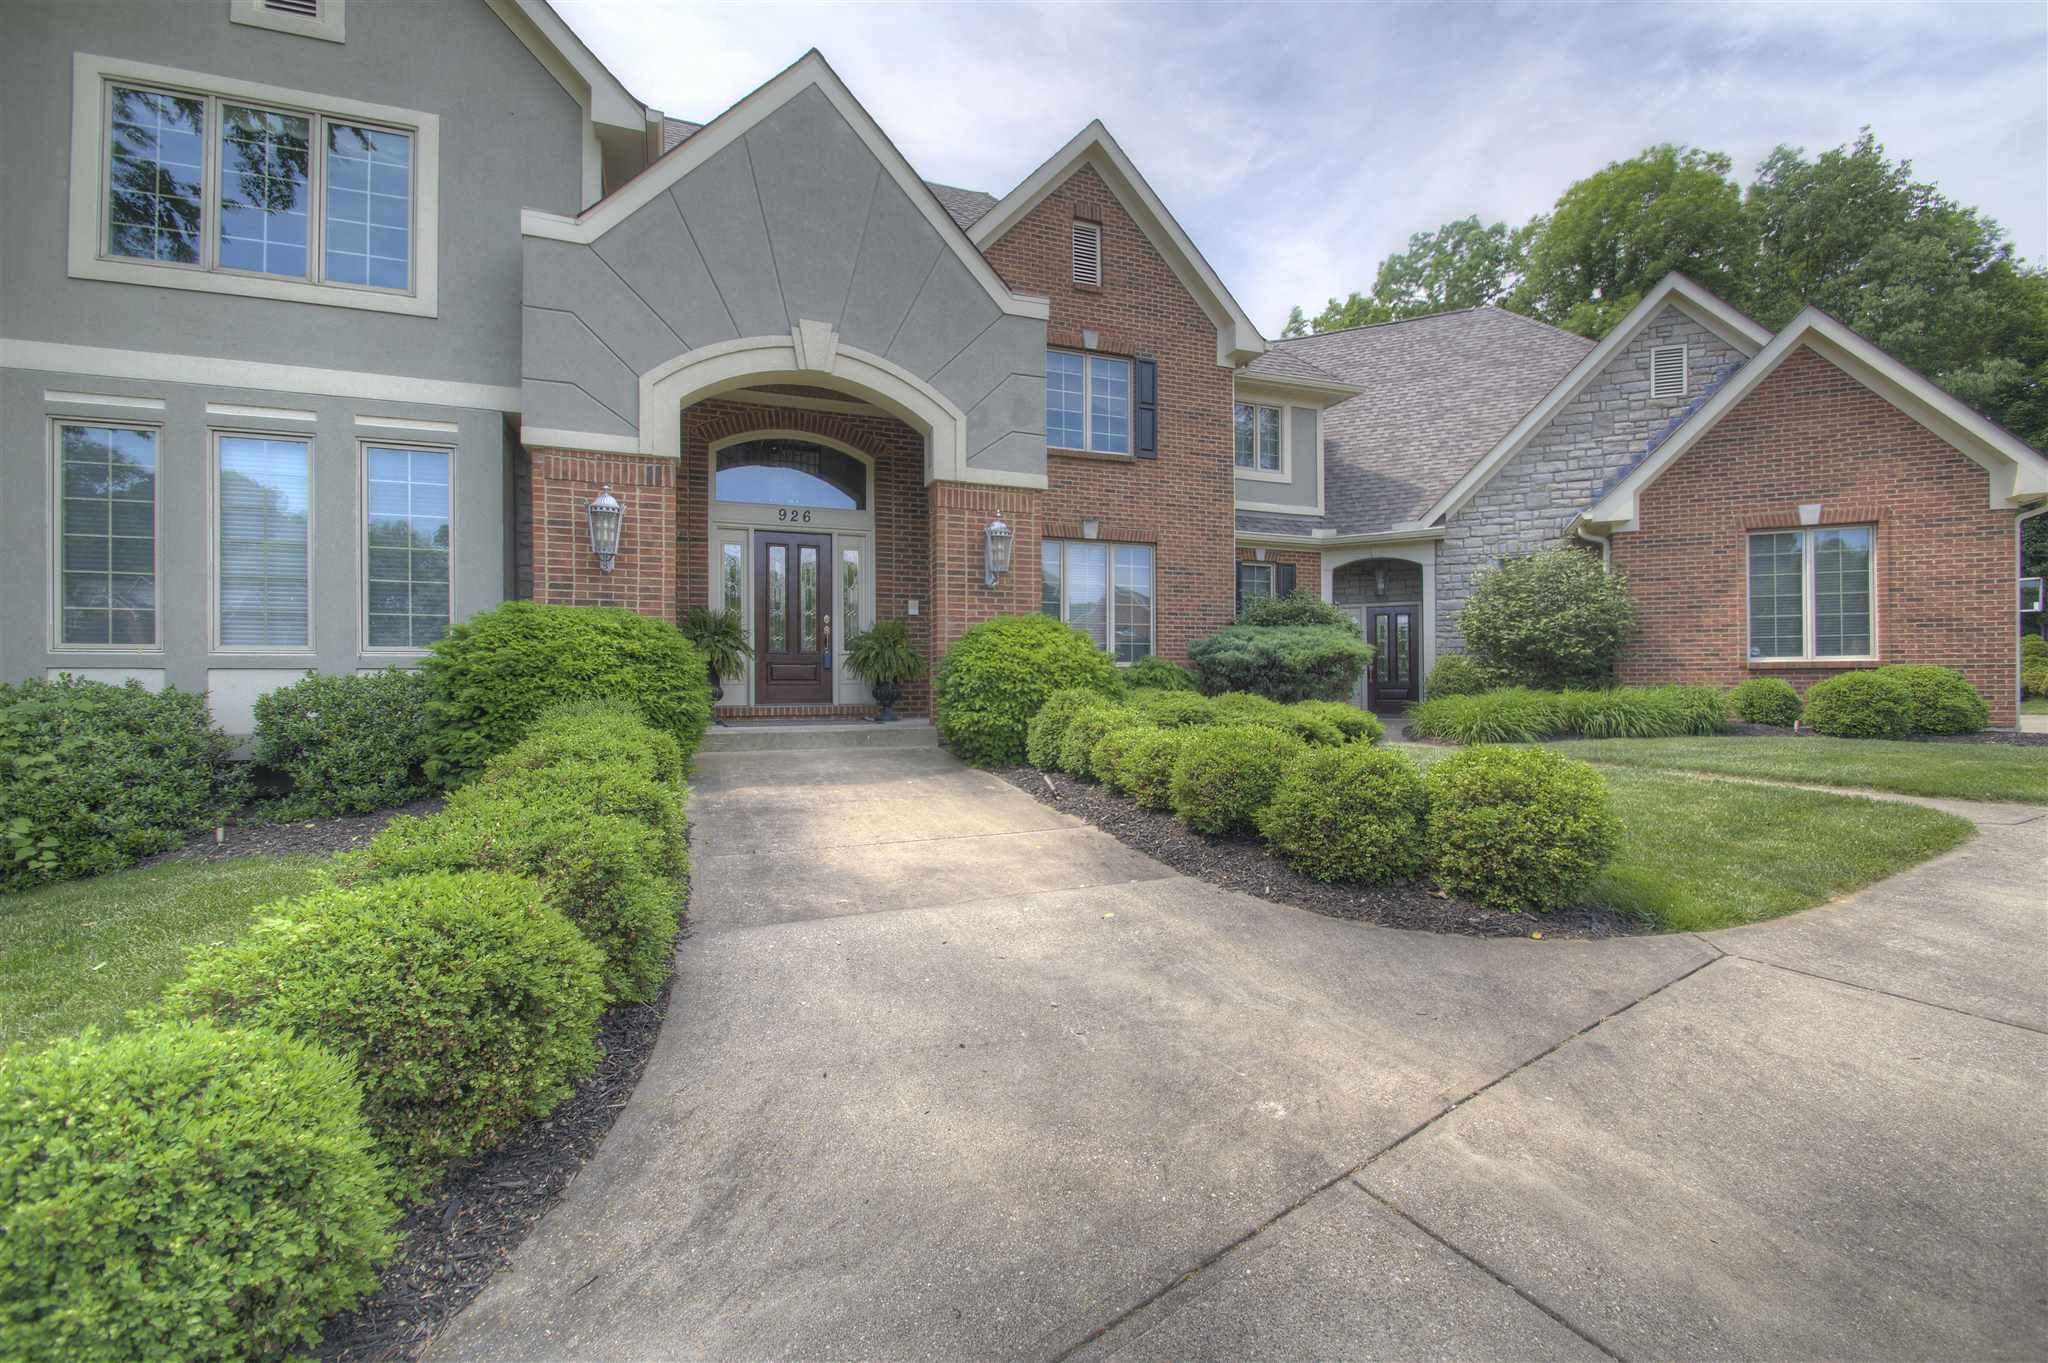 Photo 3 for 926 Riverwatch Drive Crescent Springs, KY 41017